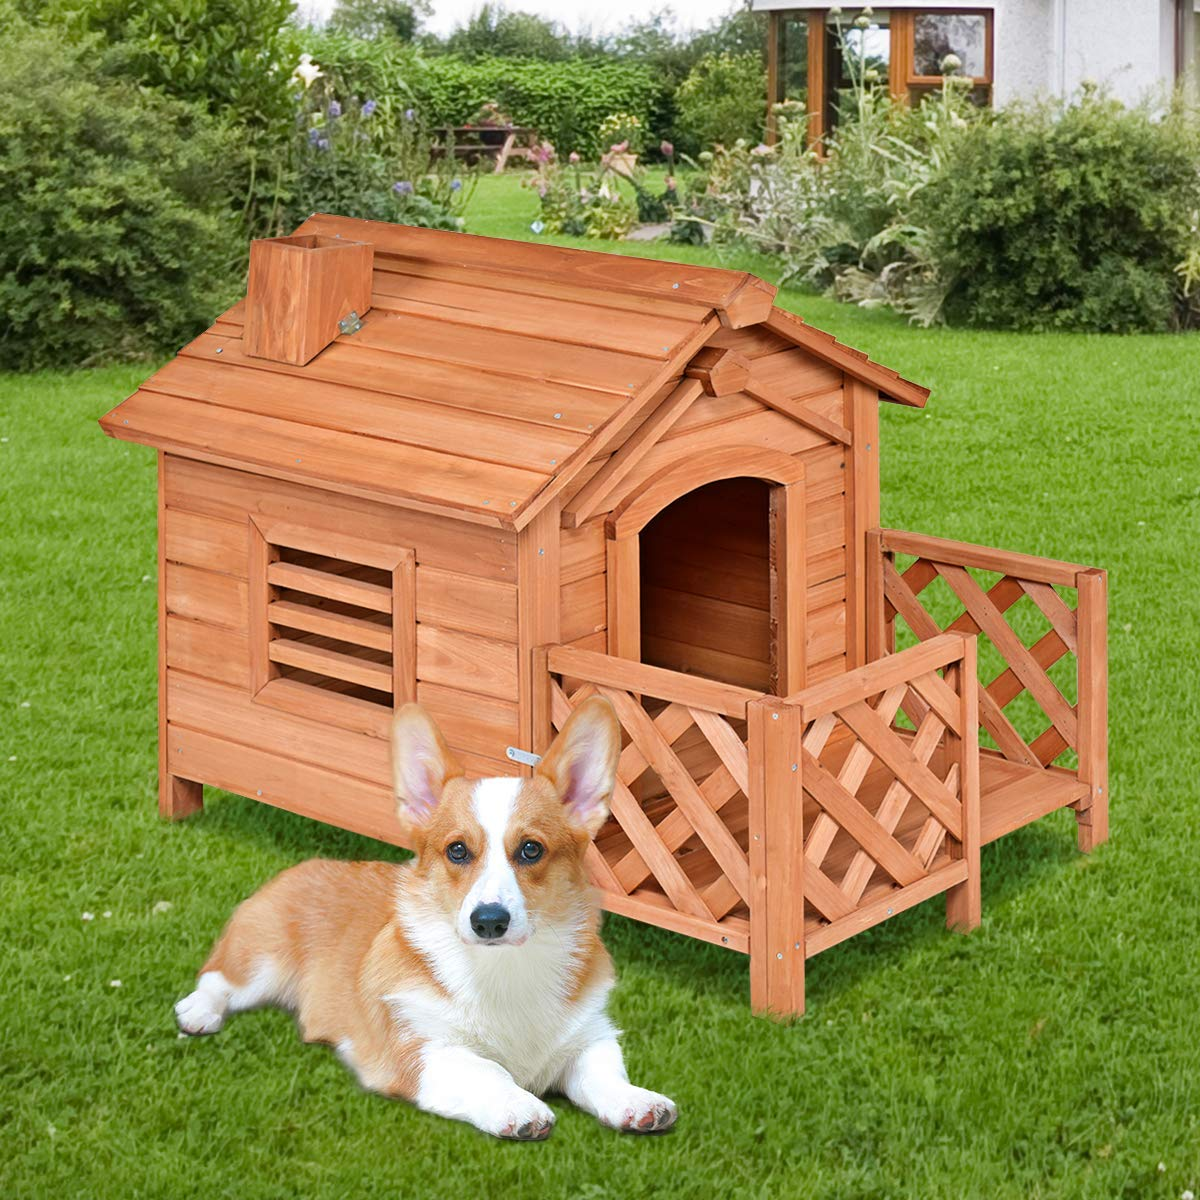 Tangkula Pet Dog House, Wooden Dog Room with Porch & Fence, Raised Vent and Balcony for Outdoor & Indoor Use, Pet House Shelter for Puppies and Dogs, Wood Dog House Dog Kennel